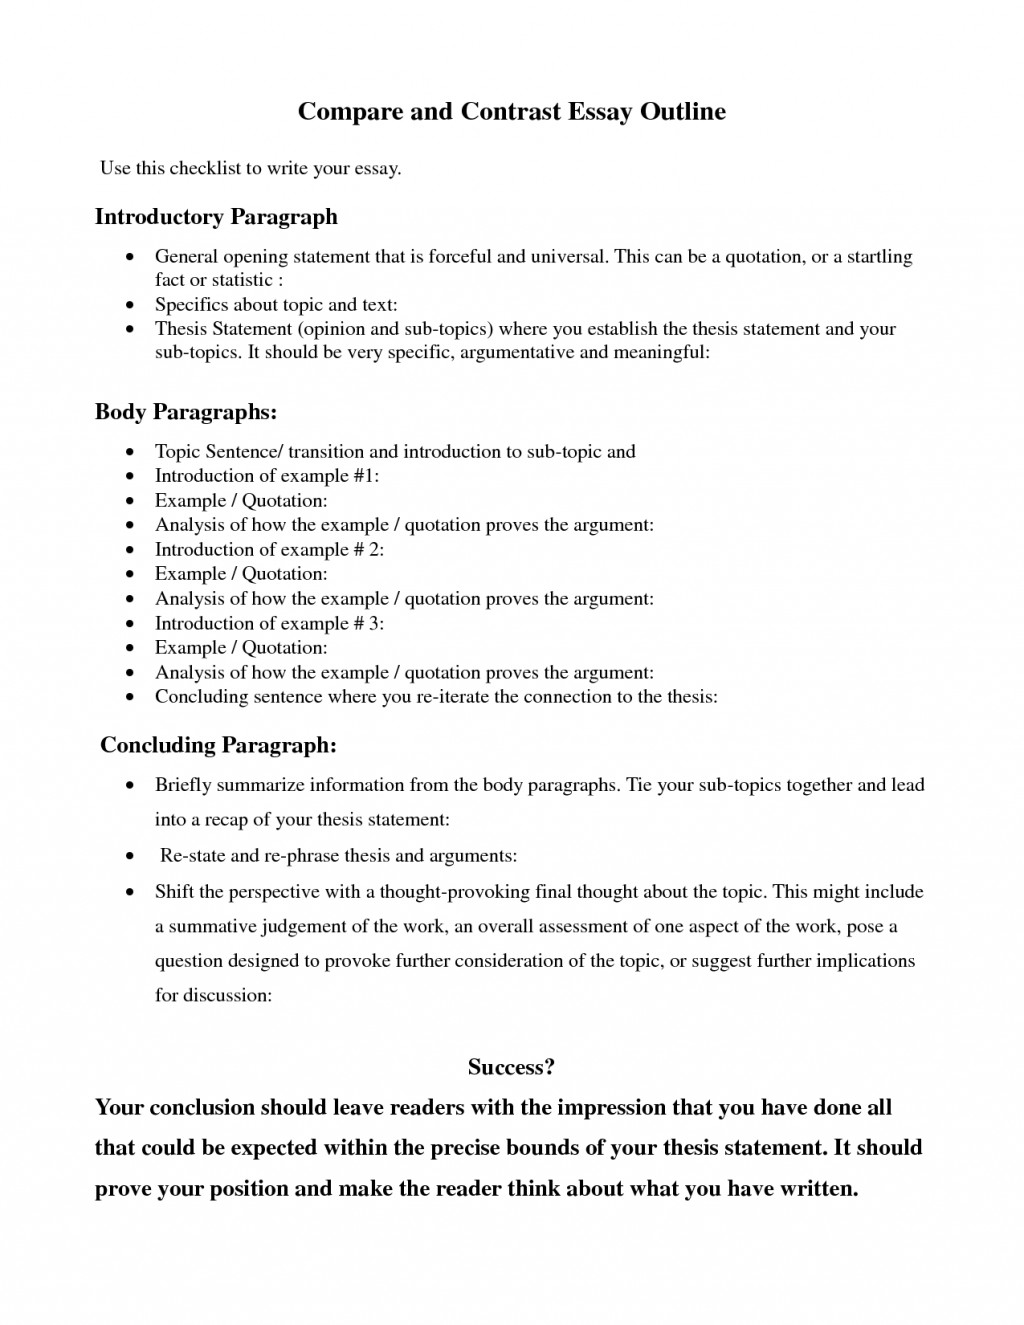 011 Conclusion For Compare And Contrast Essay Example Awesome How To Write A Paragraph Examples Large